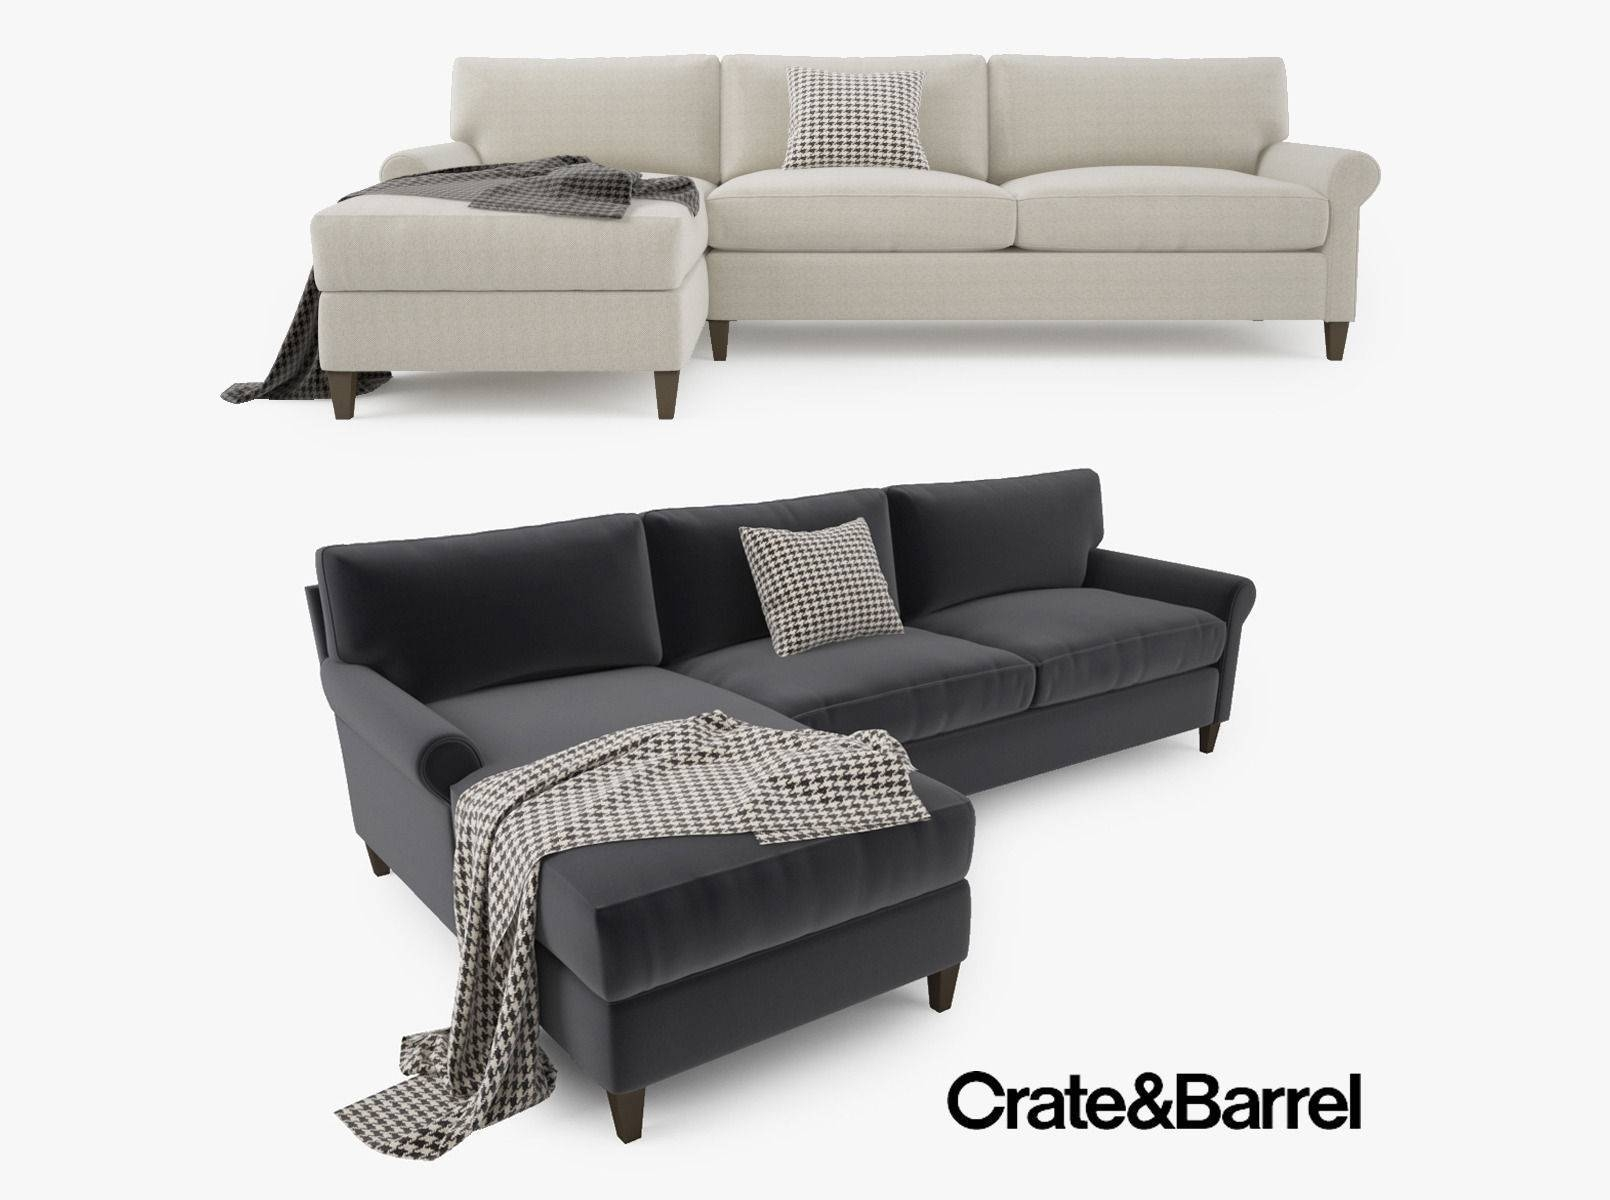 Crate And Barrel Montclair 2 Piece Sectional Sofa 3D Model Max Obj throughout Crate and Barrel Sectional Sofas (Image 12 of 30)